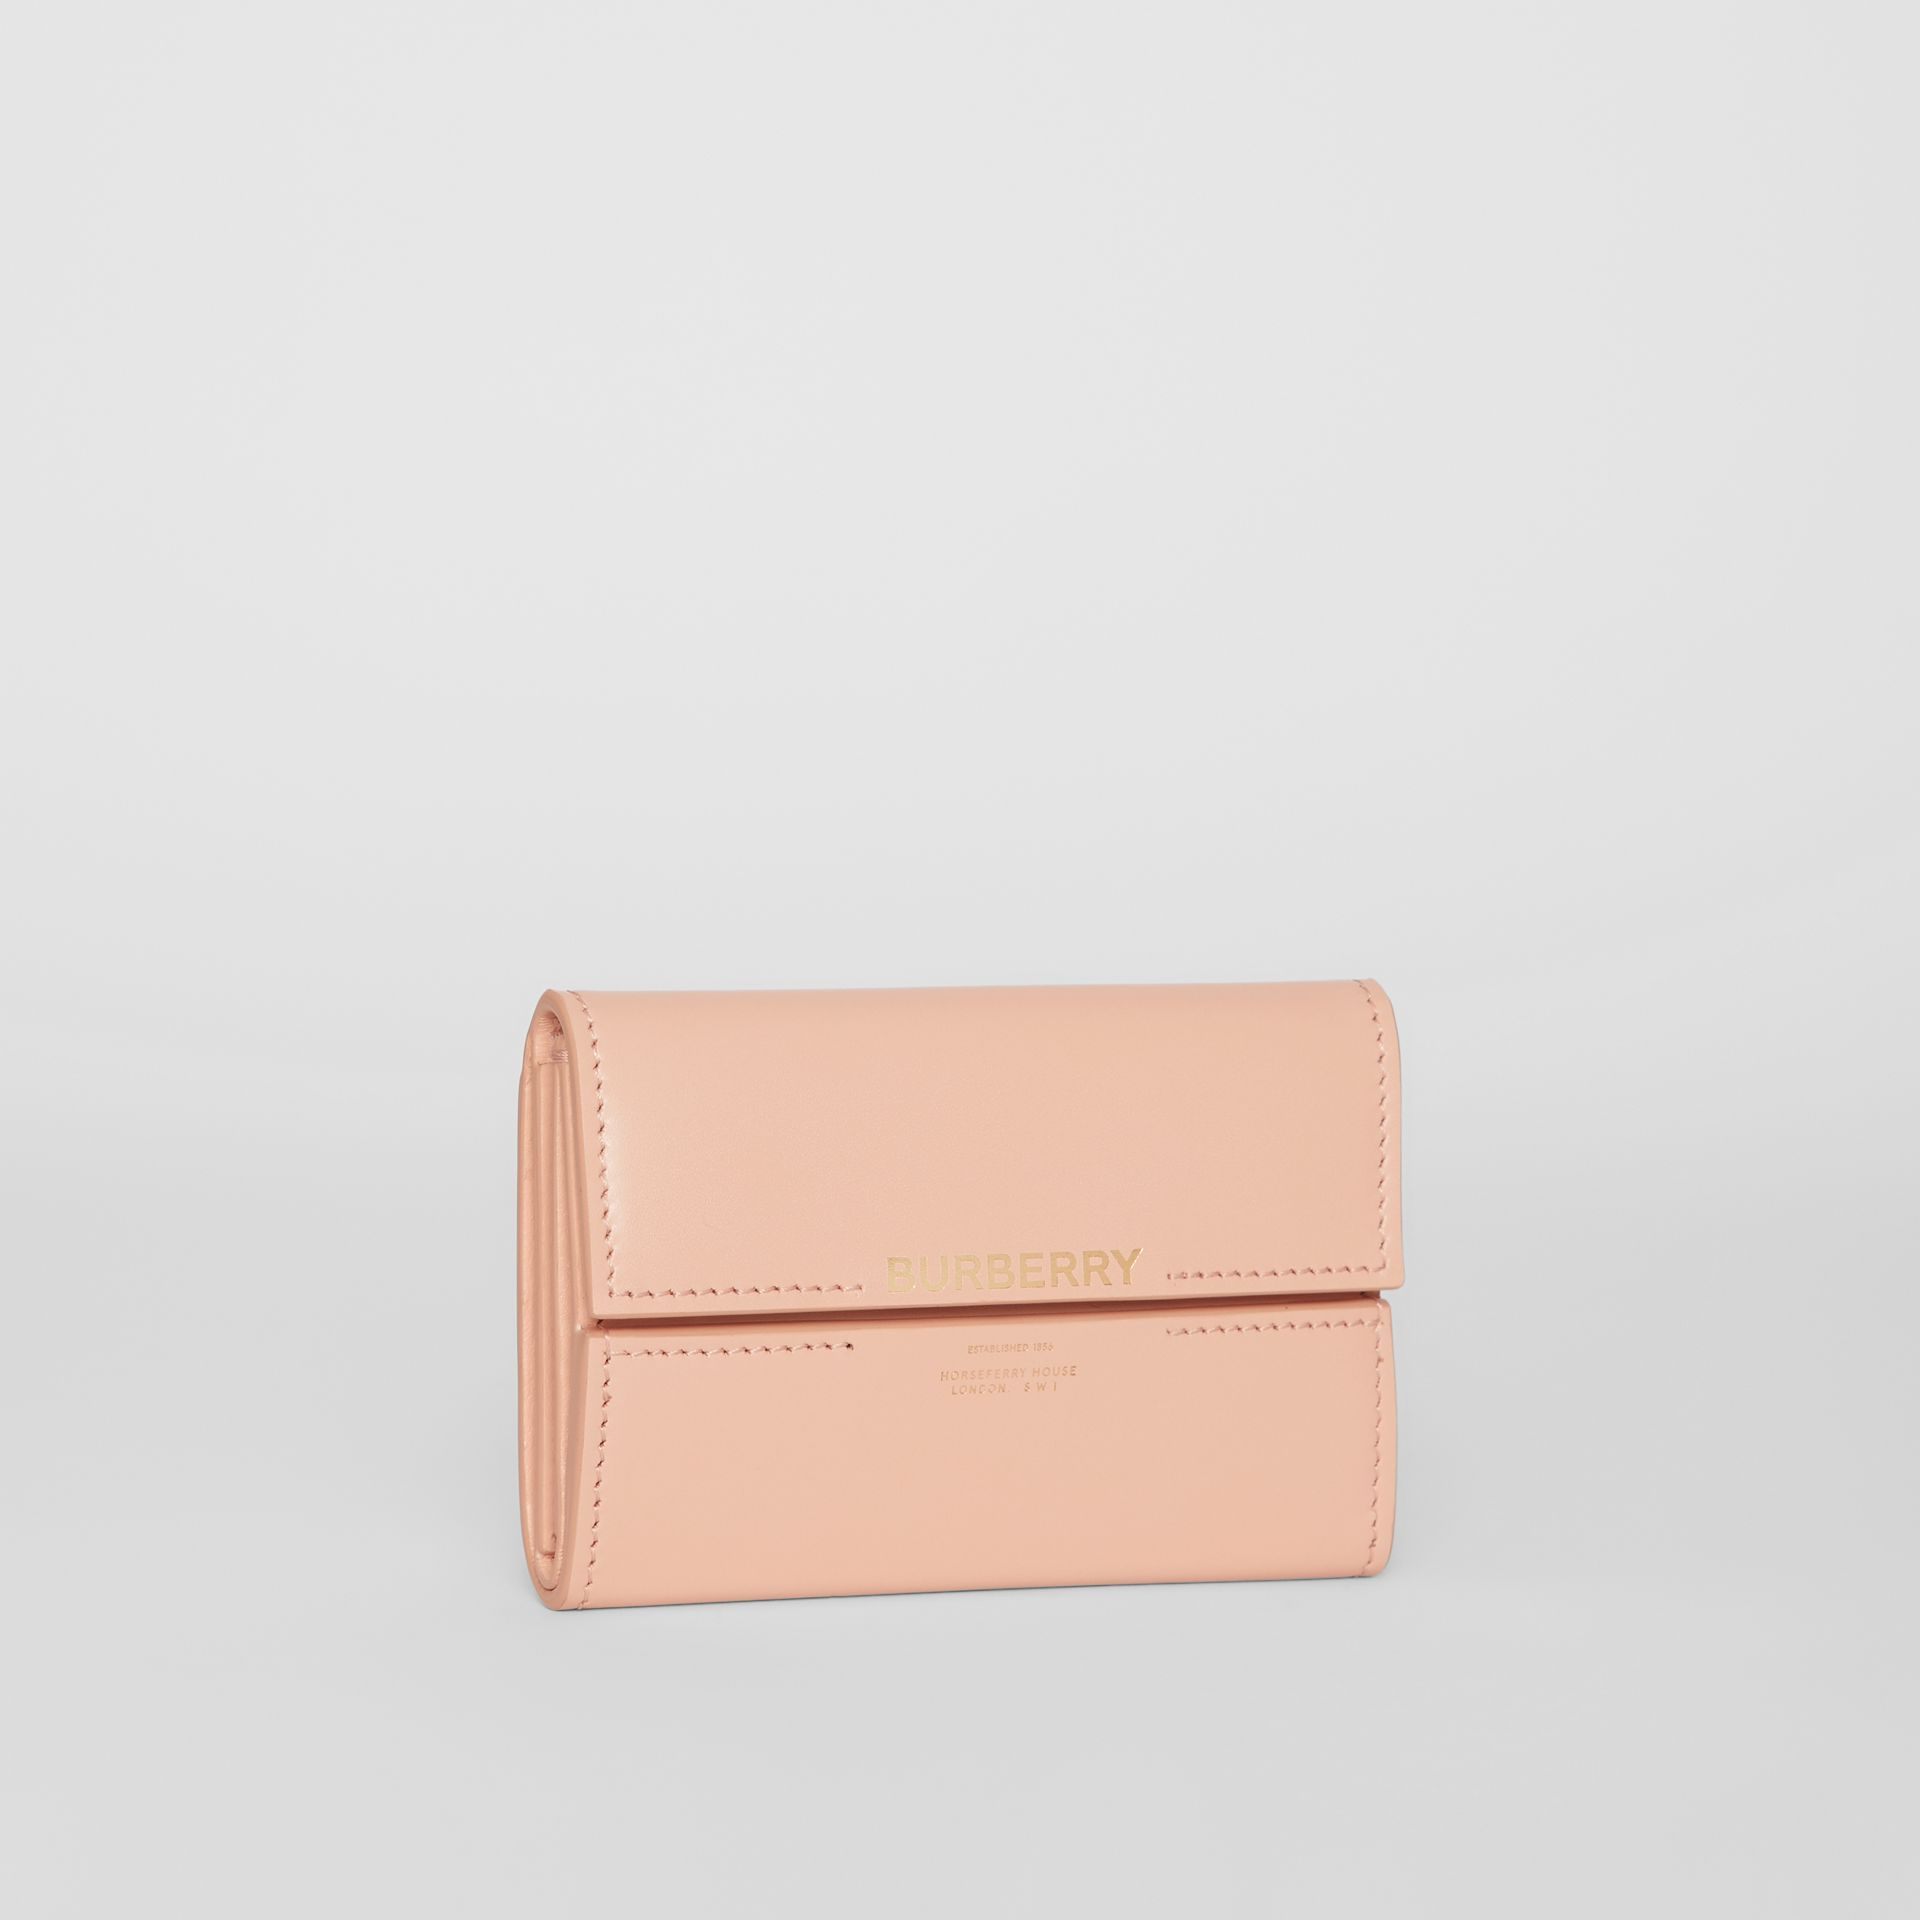 Horseferry Print Leather Folding Wallet in Blush Pink - Women | Burberry - gallery image 4